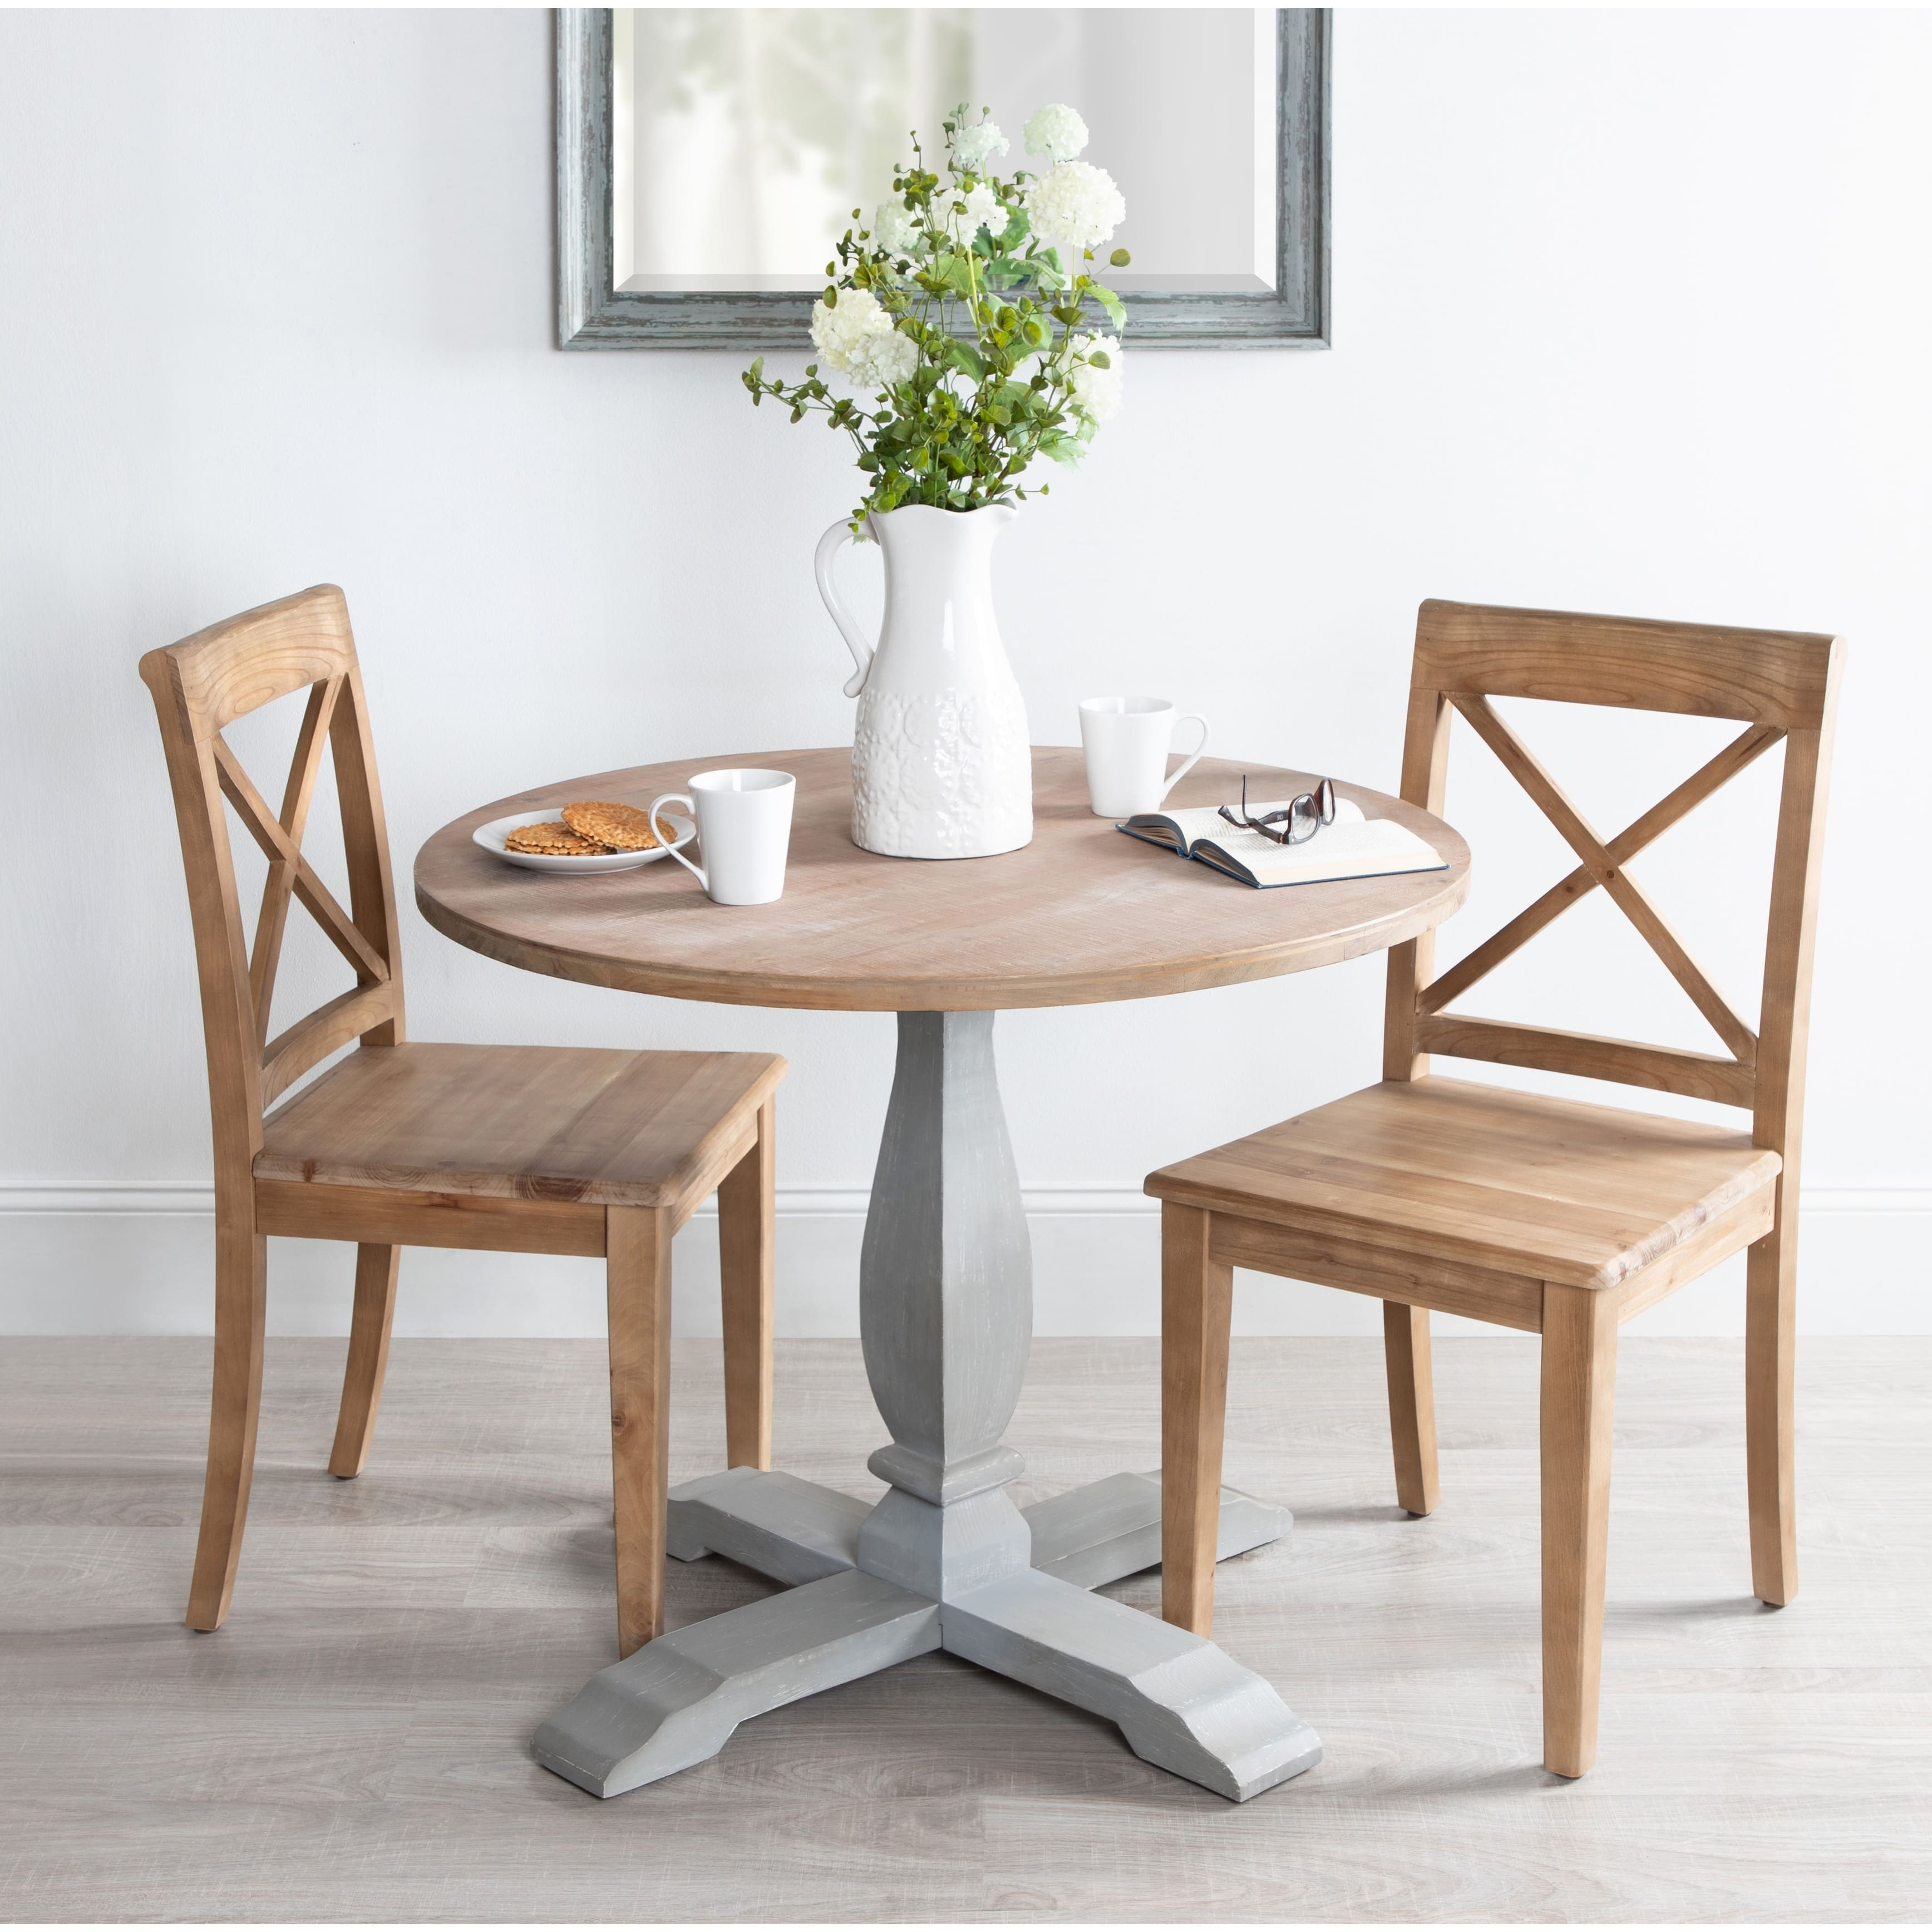 Best Deals On Dining Table And Chairs: Buy Kitchen & Dining Room Tables Online At Overstock